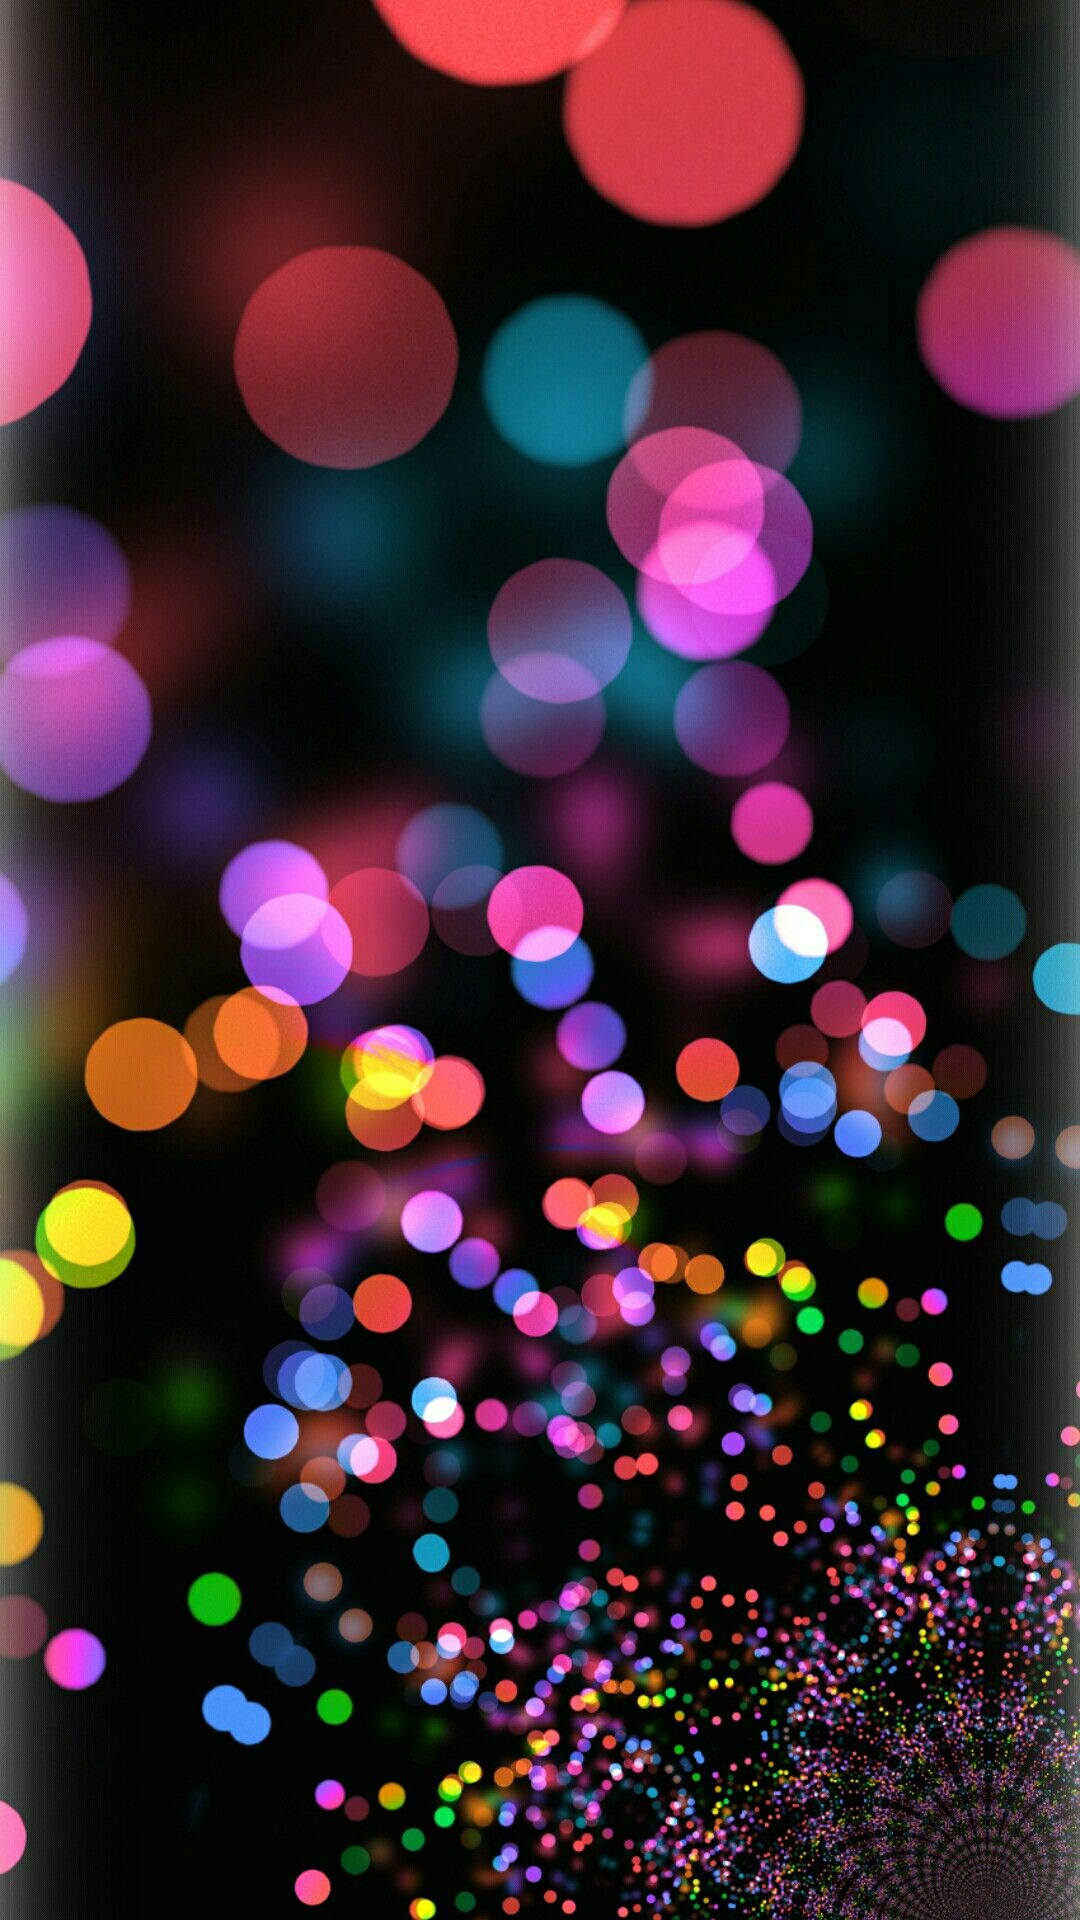 Bright Colored Bokeh Hello Wallpaper Beautiful Wallpapers Backgrounds Cellphone Wallpaper